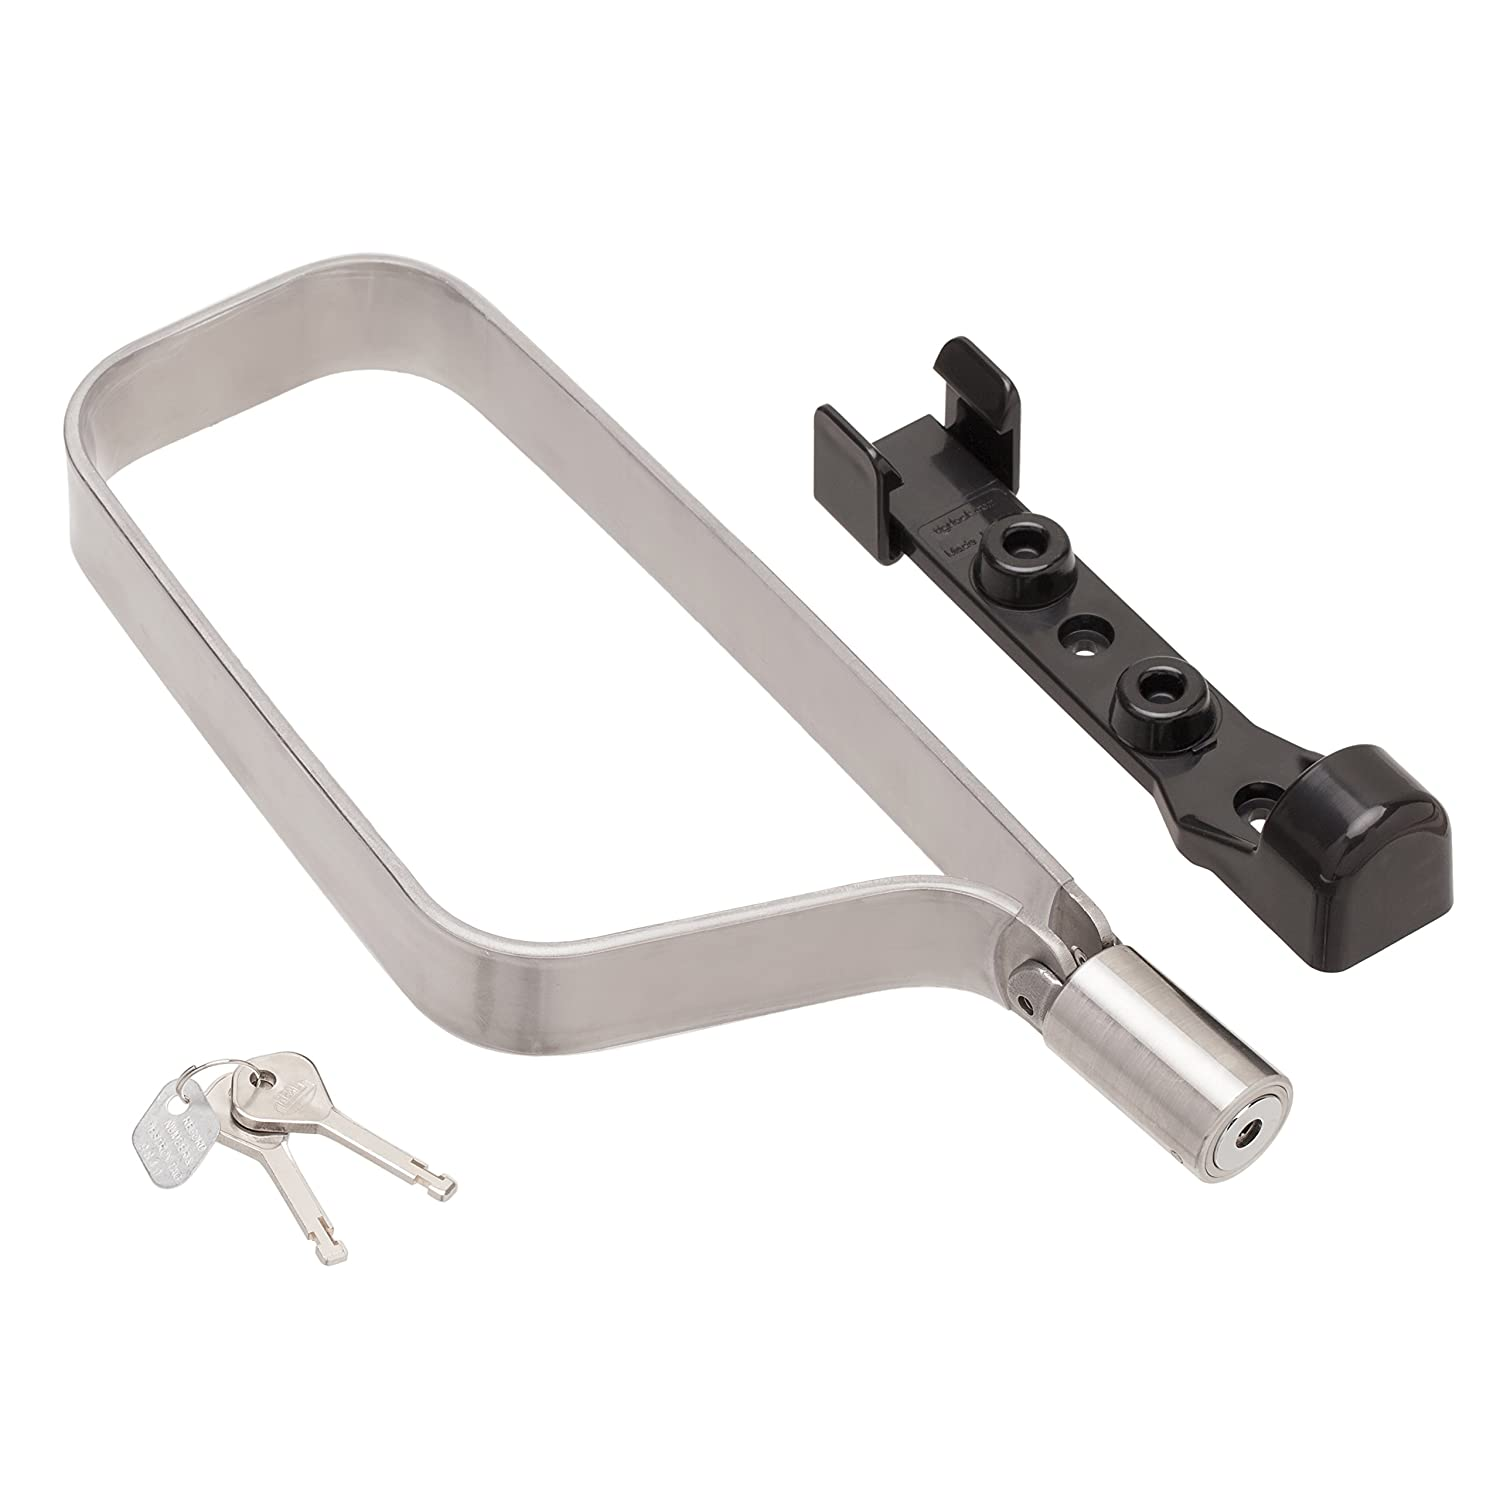 TiGr Mini Titanium Bike Lock Mounting Clip, Strong and Light Easy to Carry Bicycle Security